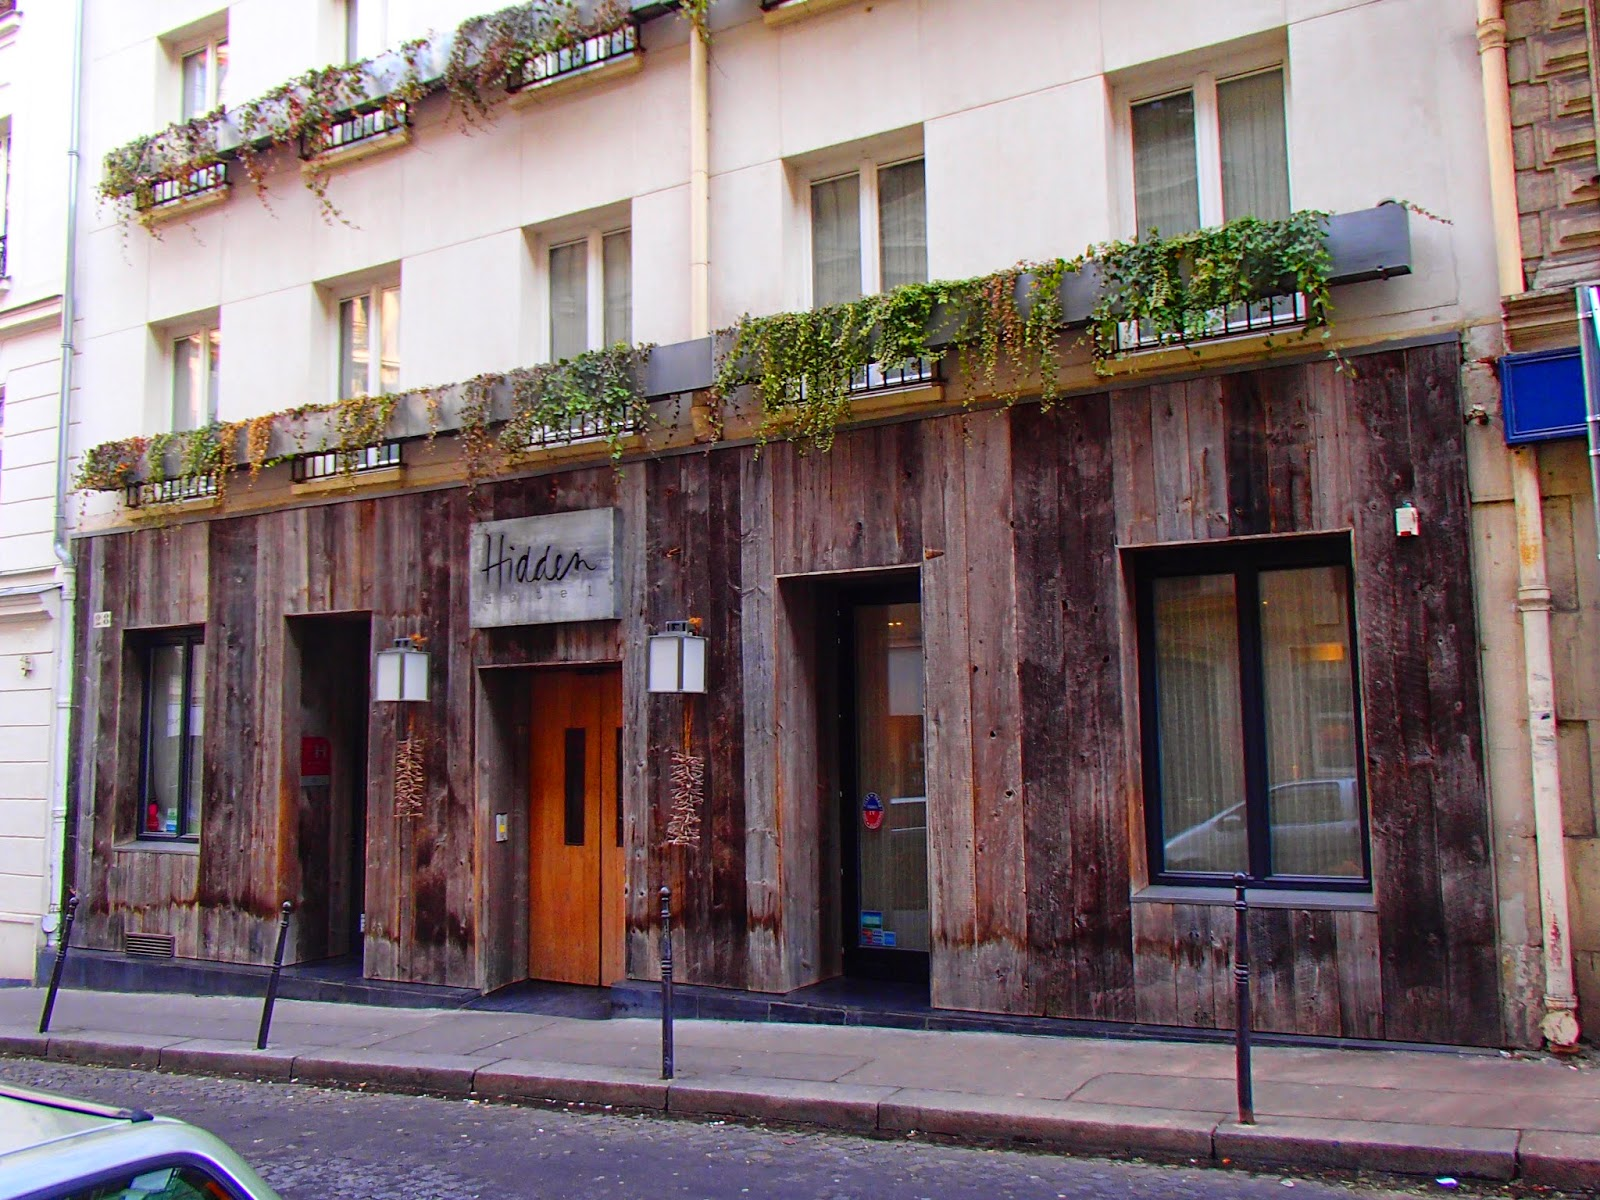 https://www.theaussieflashpacker.com/2015/02/luxury-hotel-review-hidden-hotel-paris.html